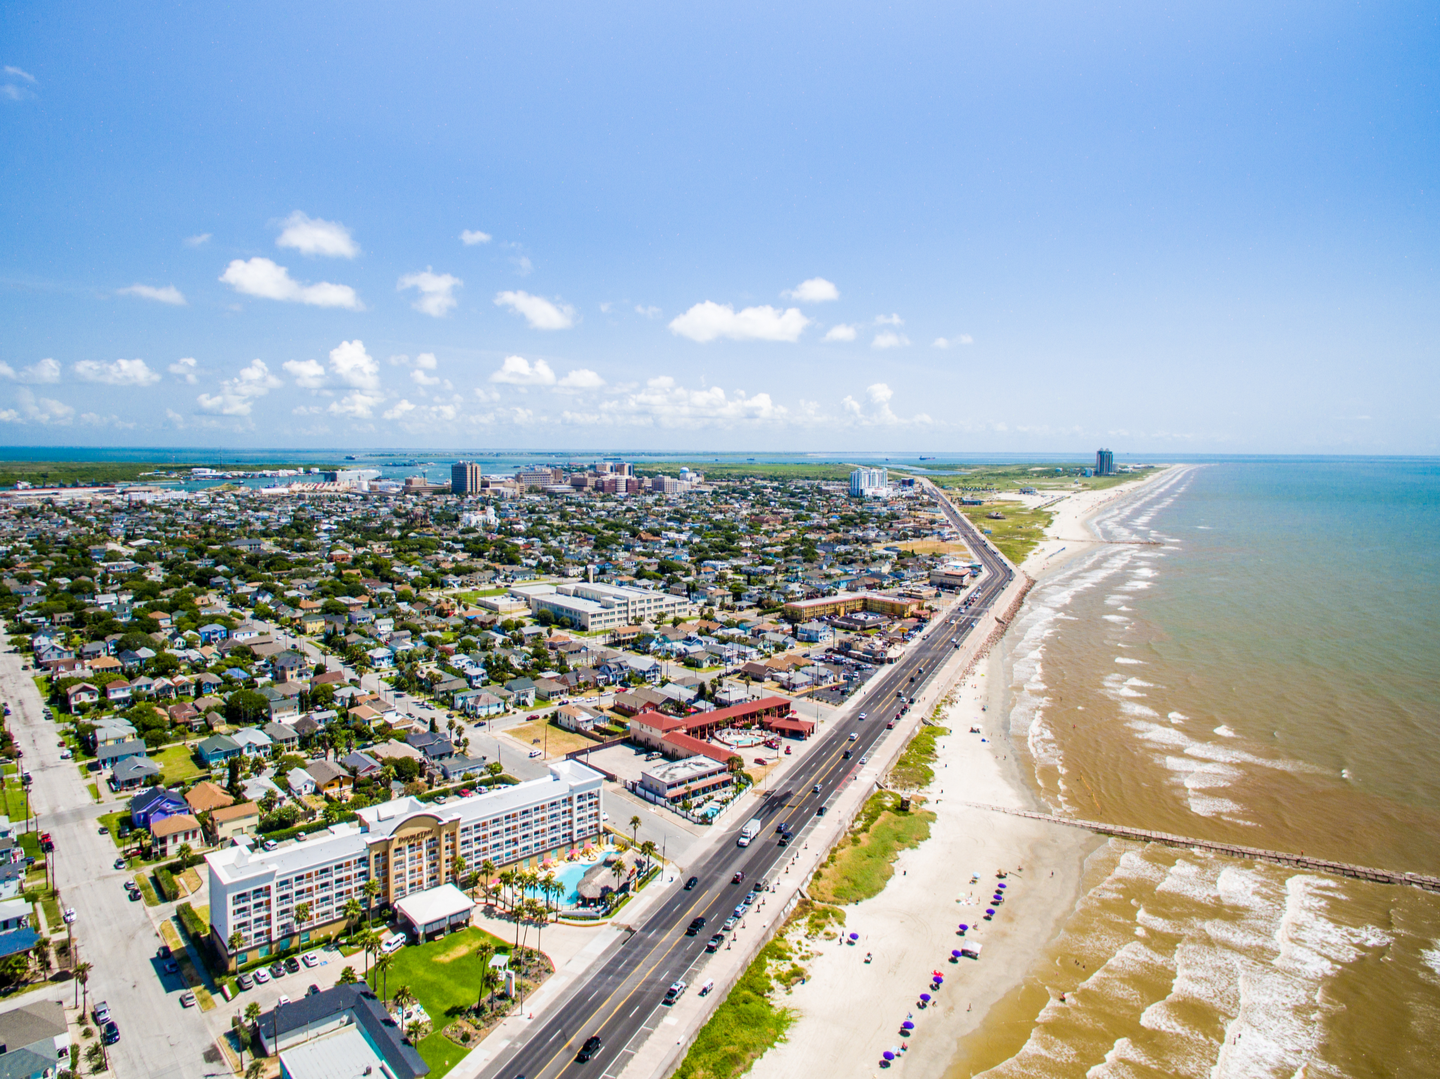 an areal view of Galveston, Texas